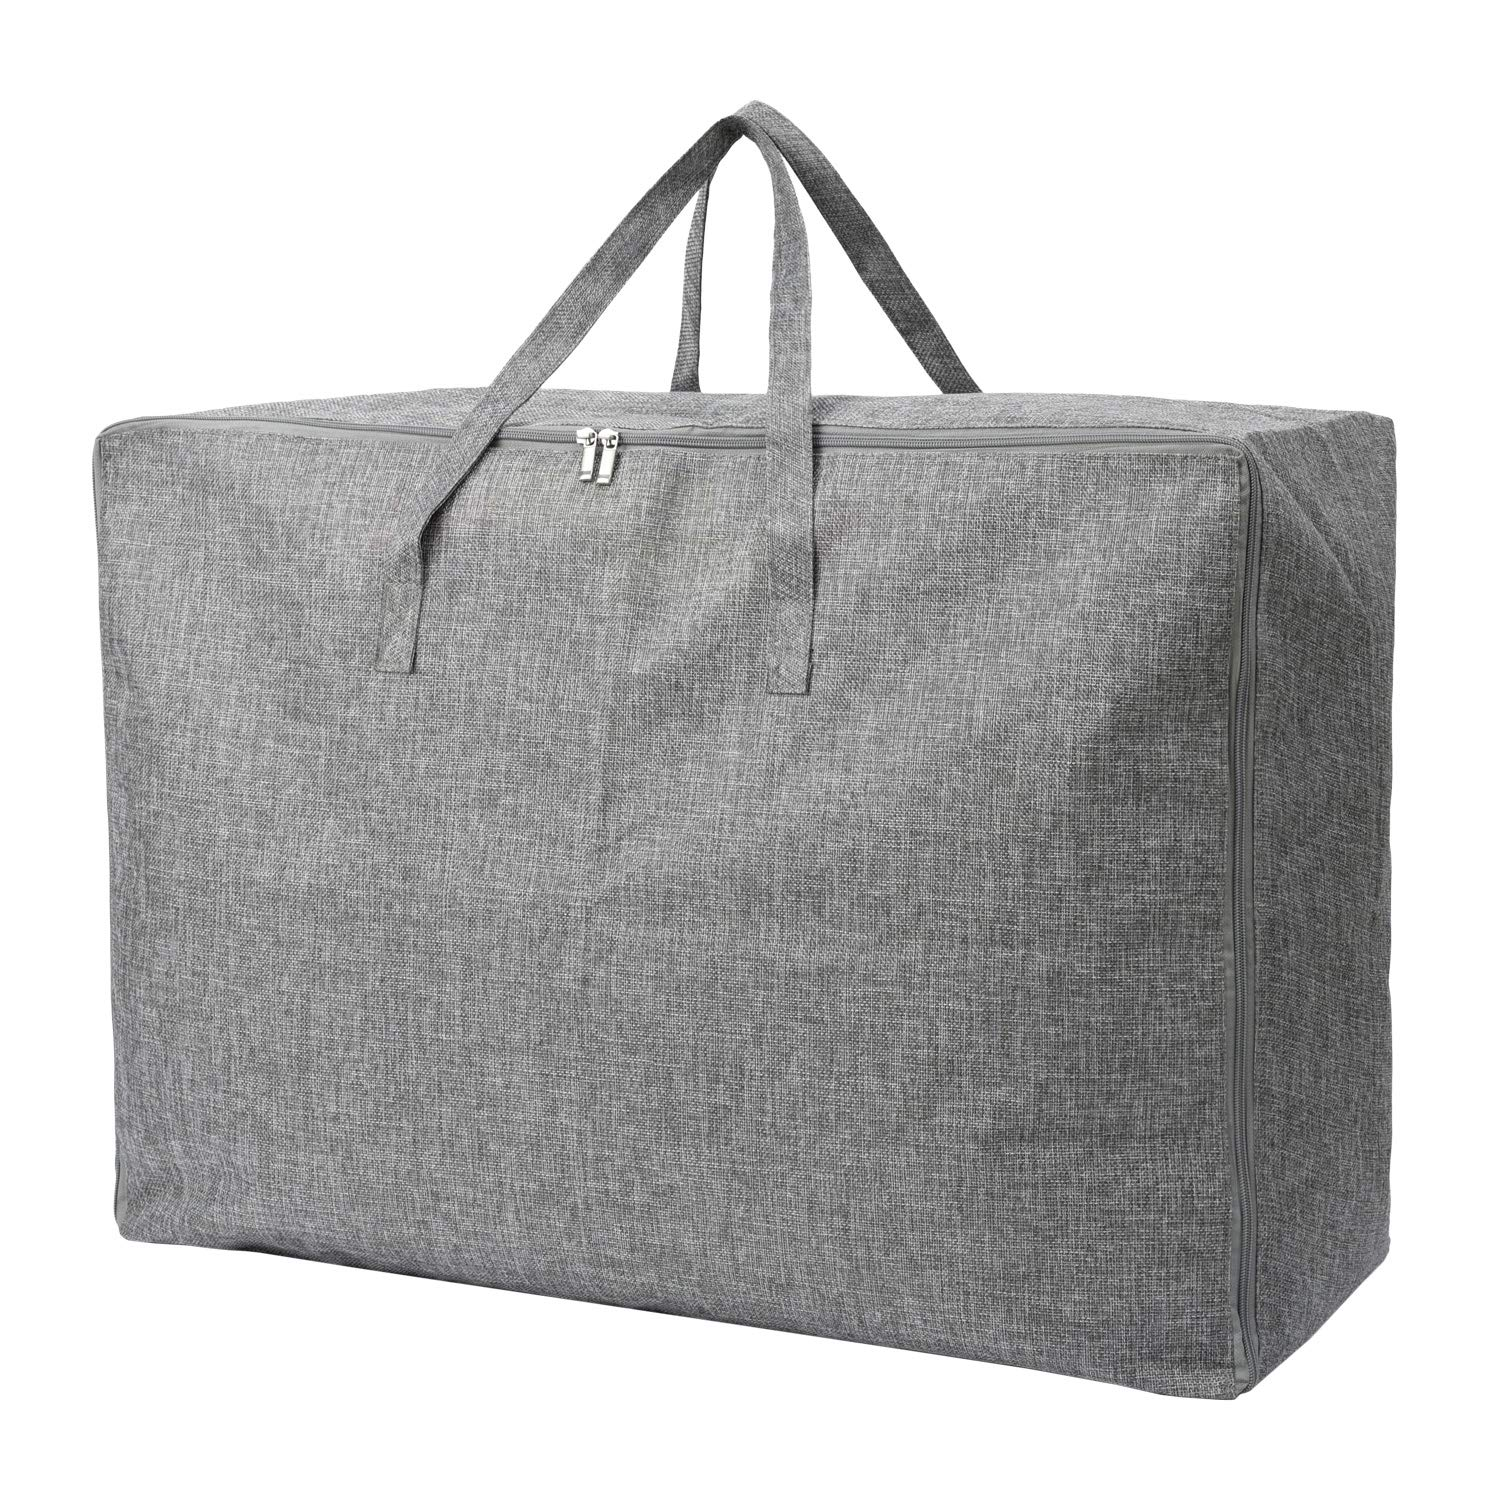 105L Extra Large Lead Free Storage Bag Organizer Tote Bag - Sturdy, No Smell, Moisture Proof Linen Fabric, Carrying Bag, Camping Bag, Clothes Bag for Bedding, Comforters, Pillows, House Moving. (Grey)